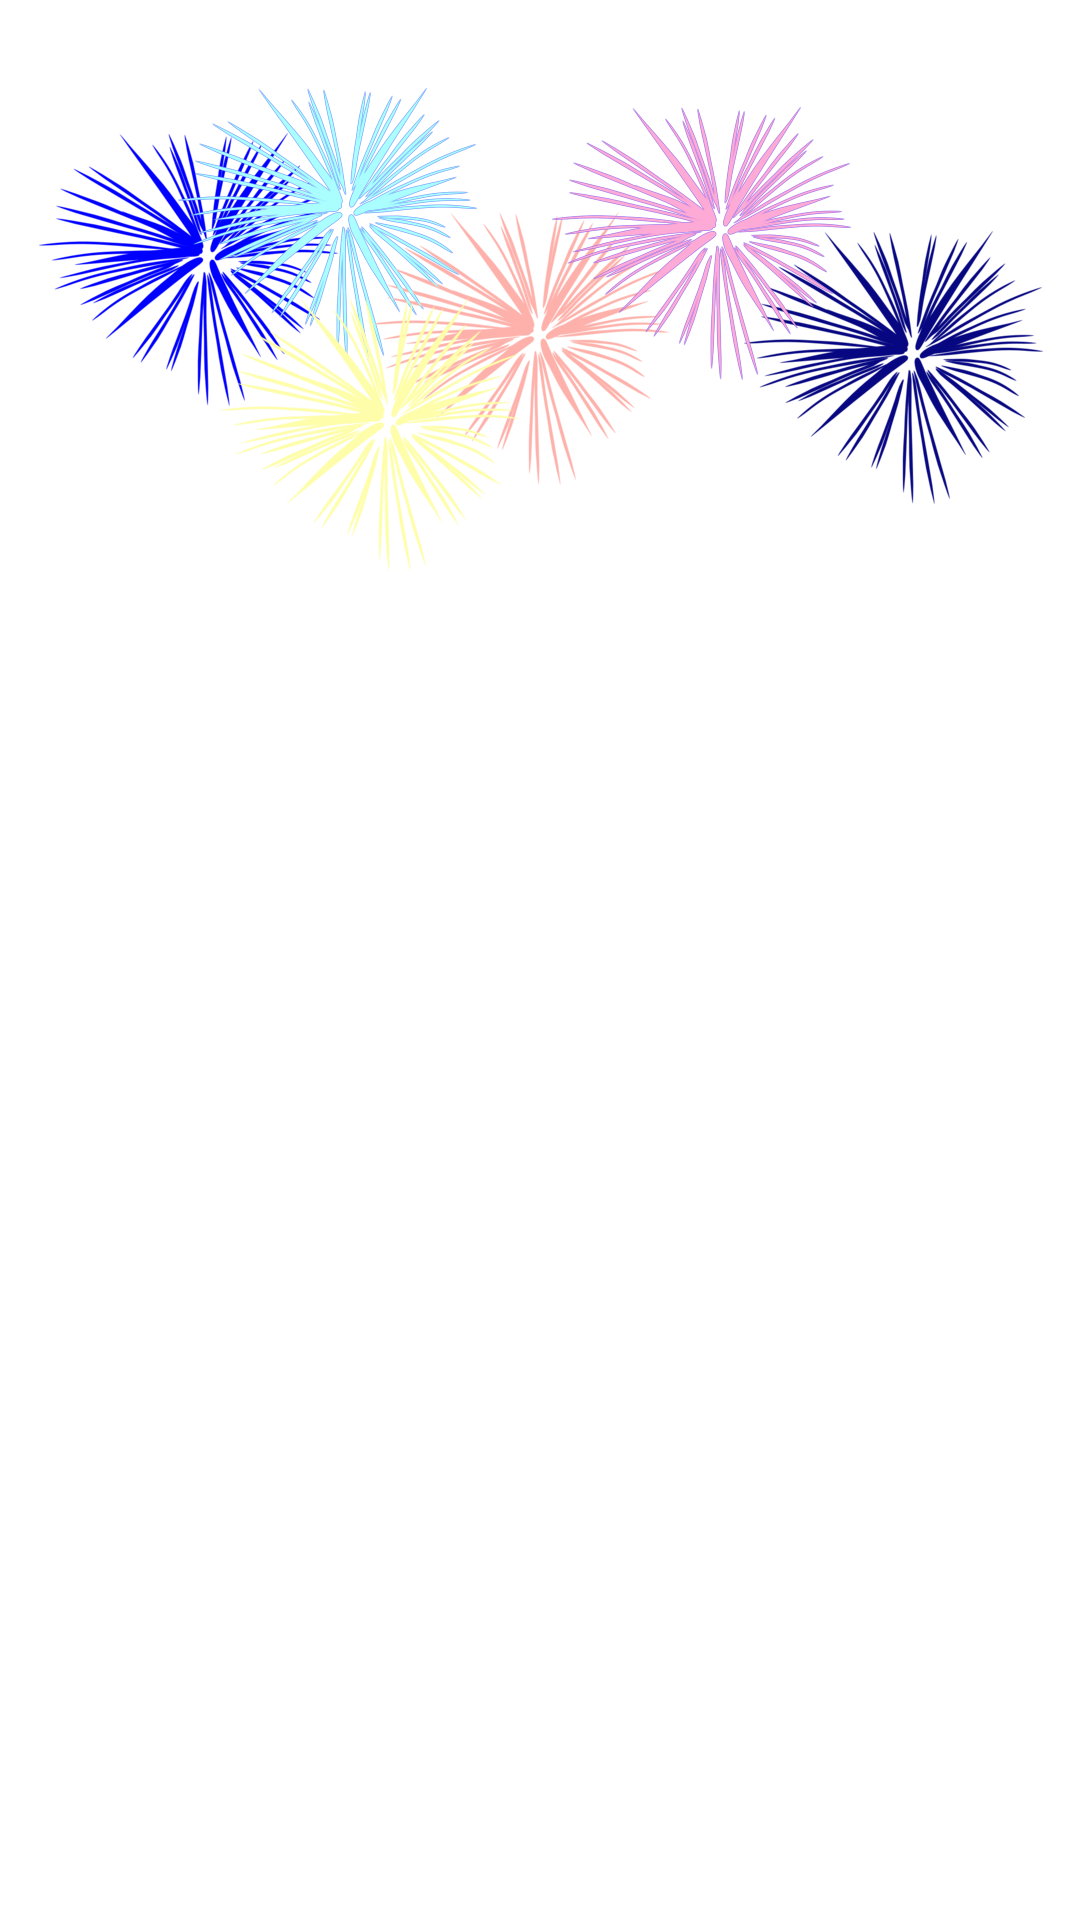 Colorful s snapchat filter. Clipart fireworks new year firework